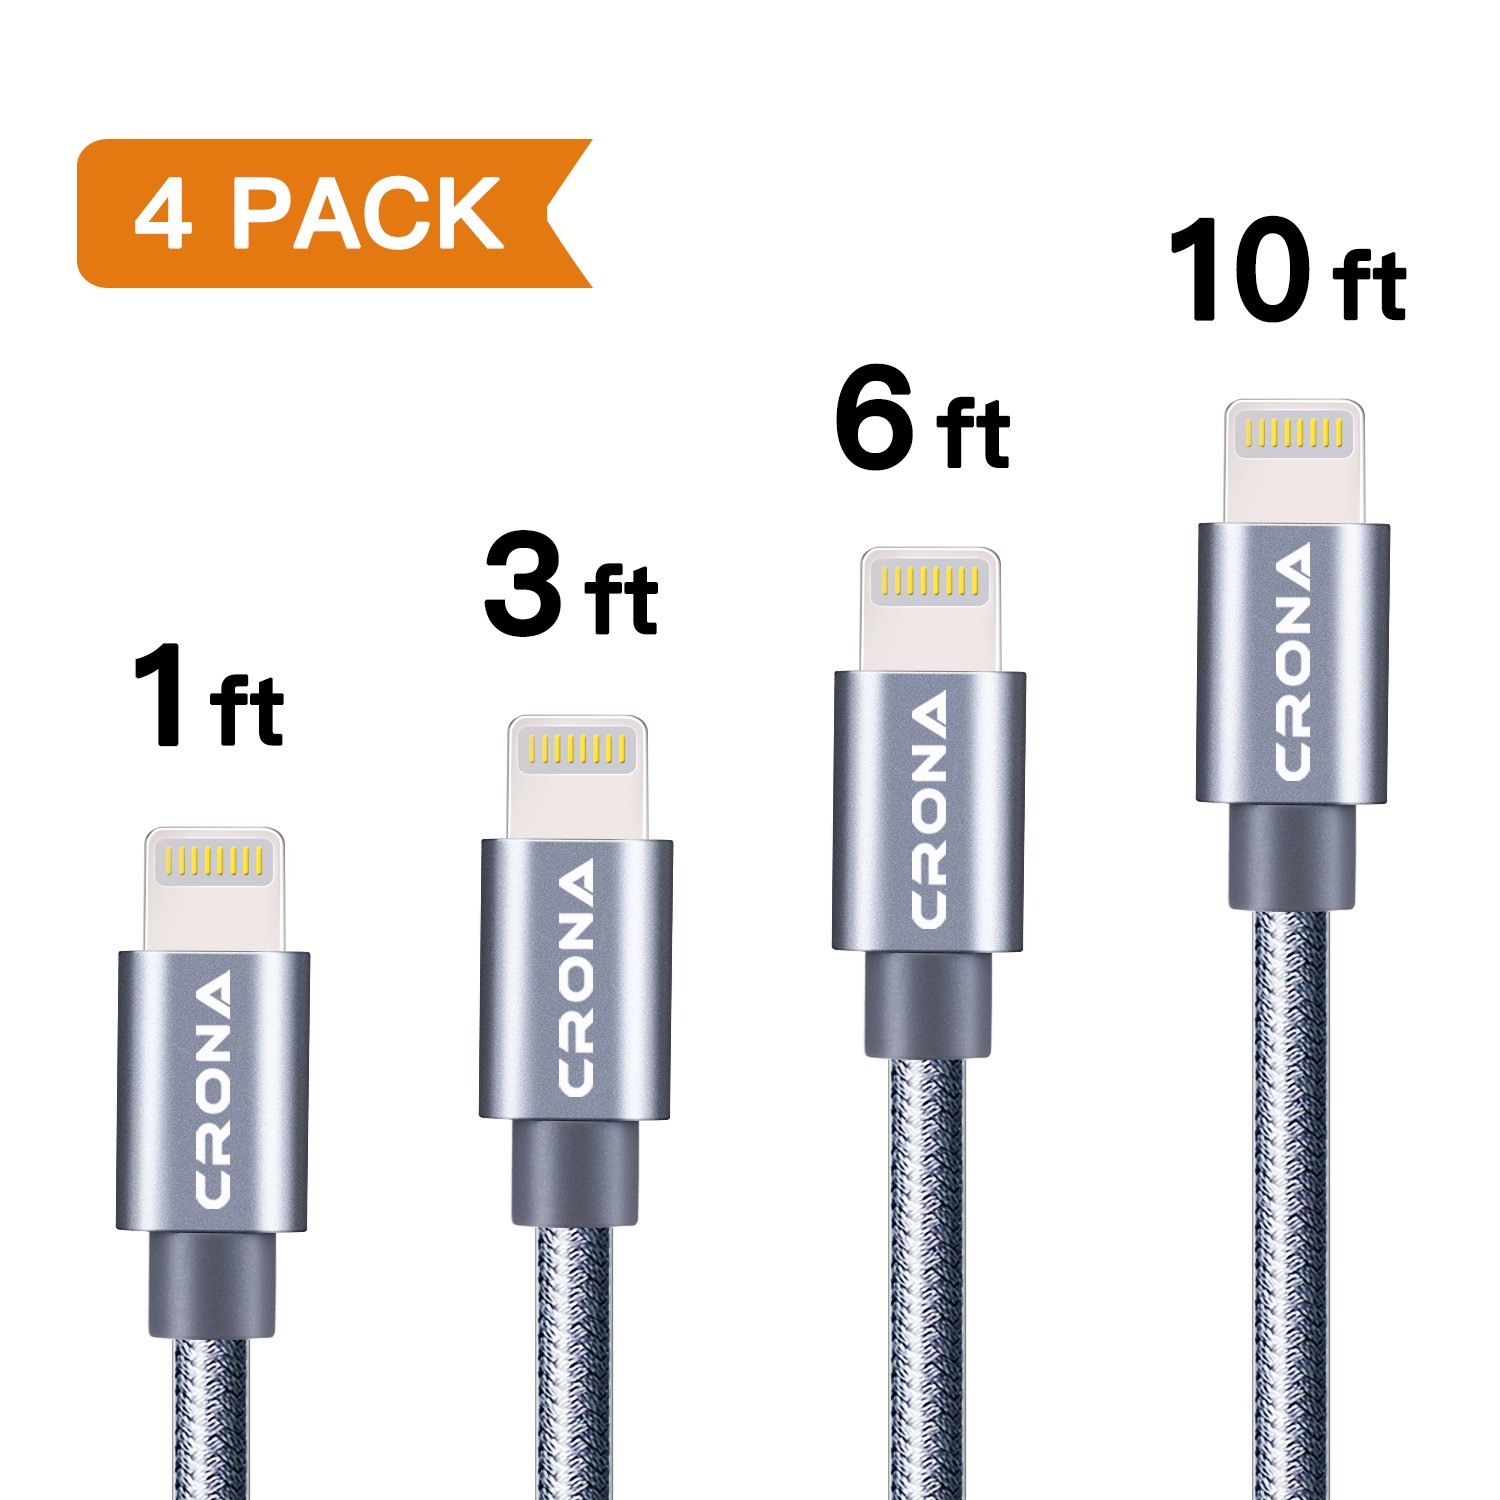 Amazon.com: Lightning Cable, CRONA iPhone Charging Cable 4 Pack (10f ...